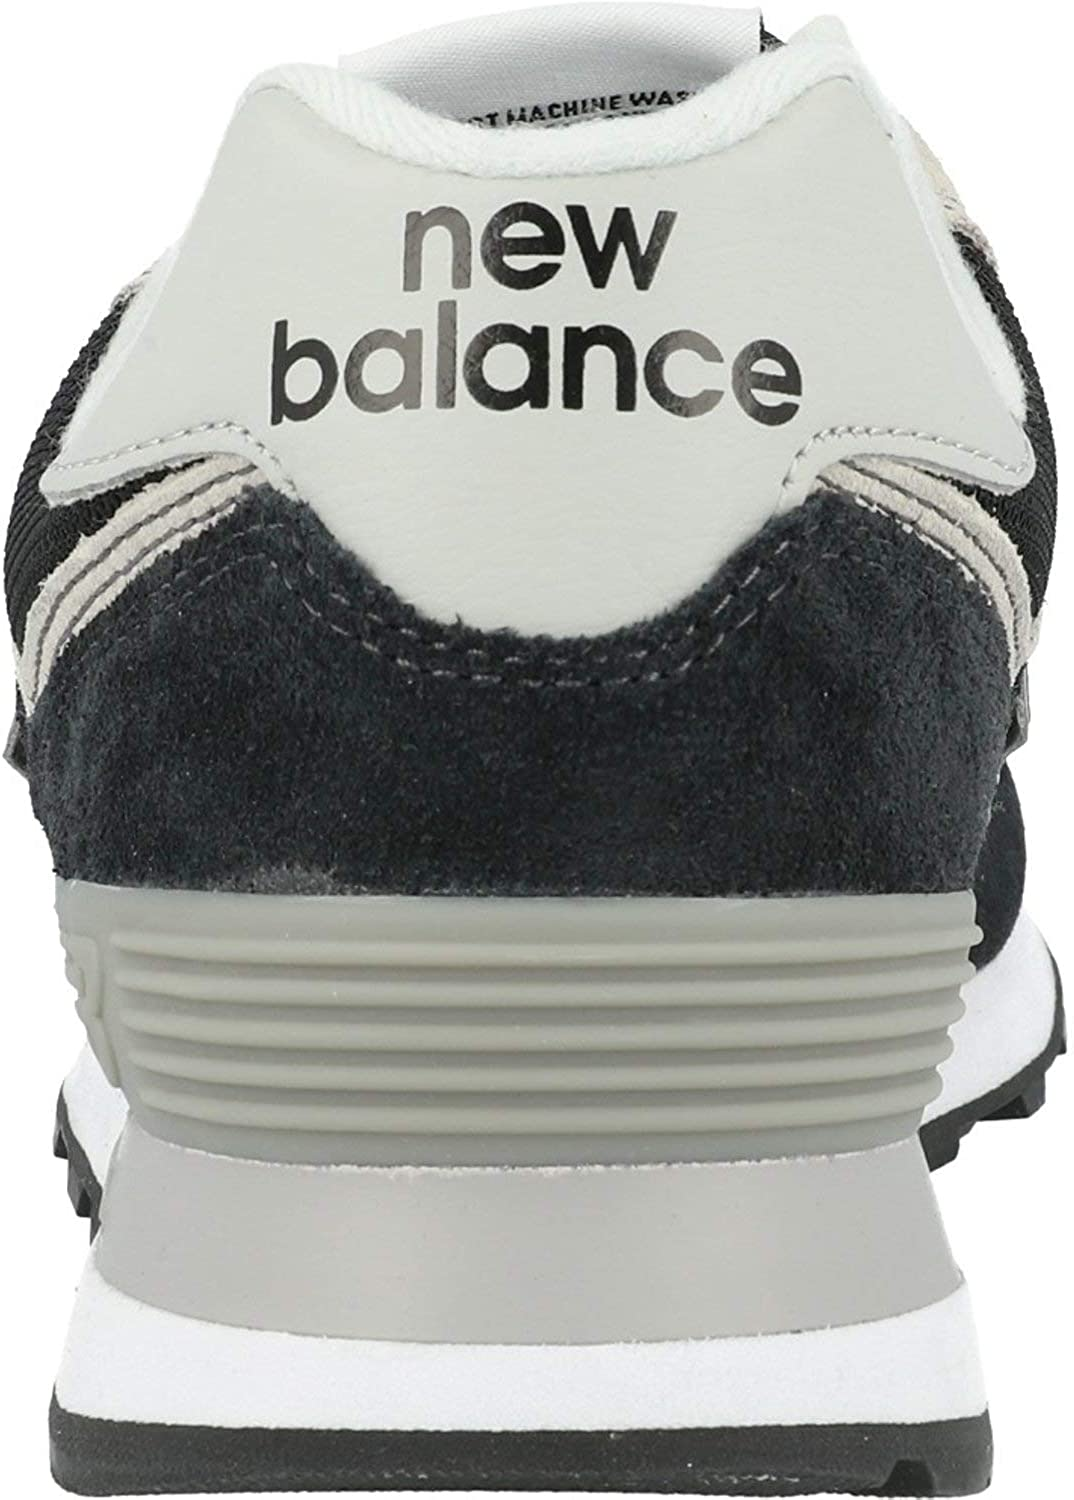 New Balance 574v2-core Trainers, Zapatillas para Hombre: Amazon.es: Zapatos y complementos